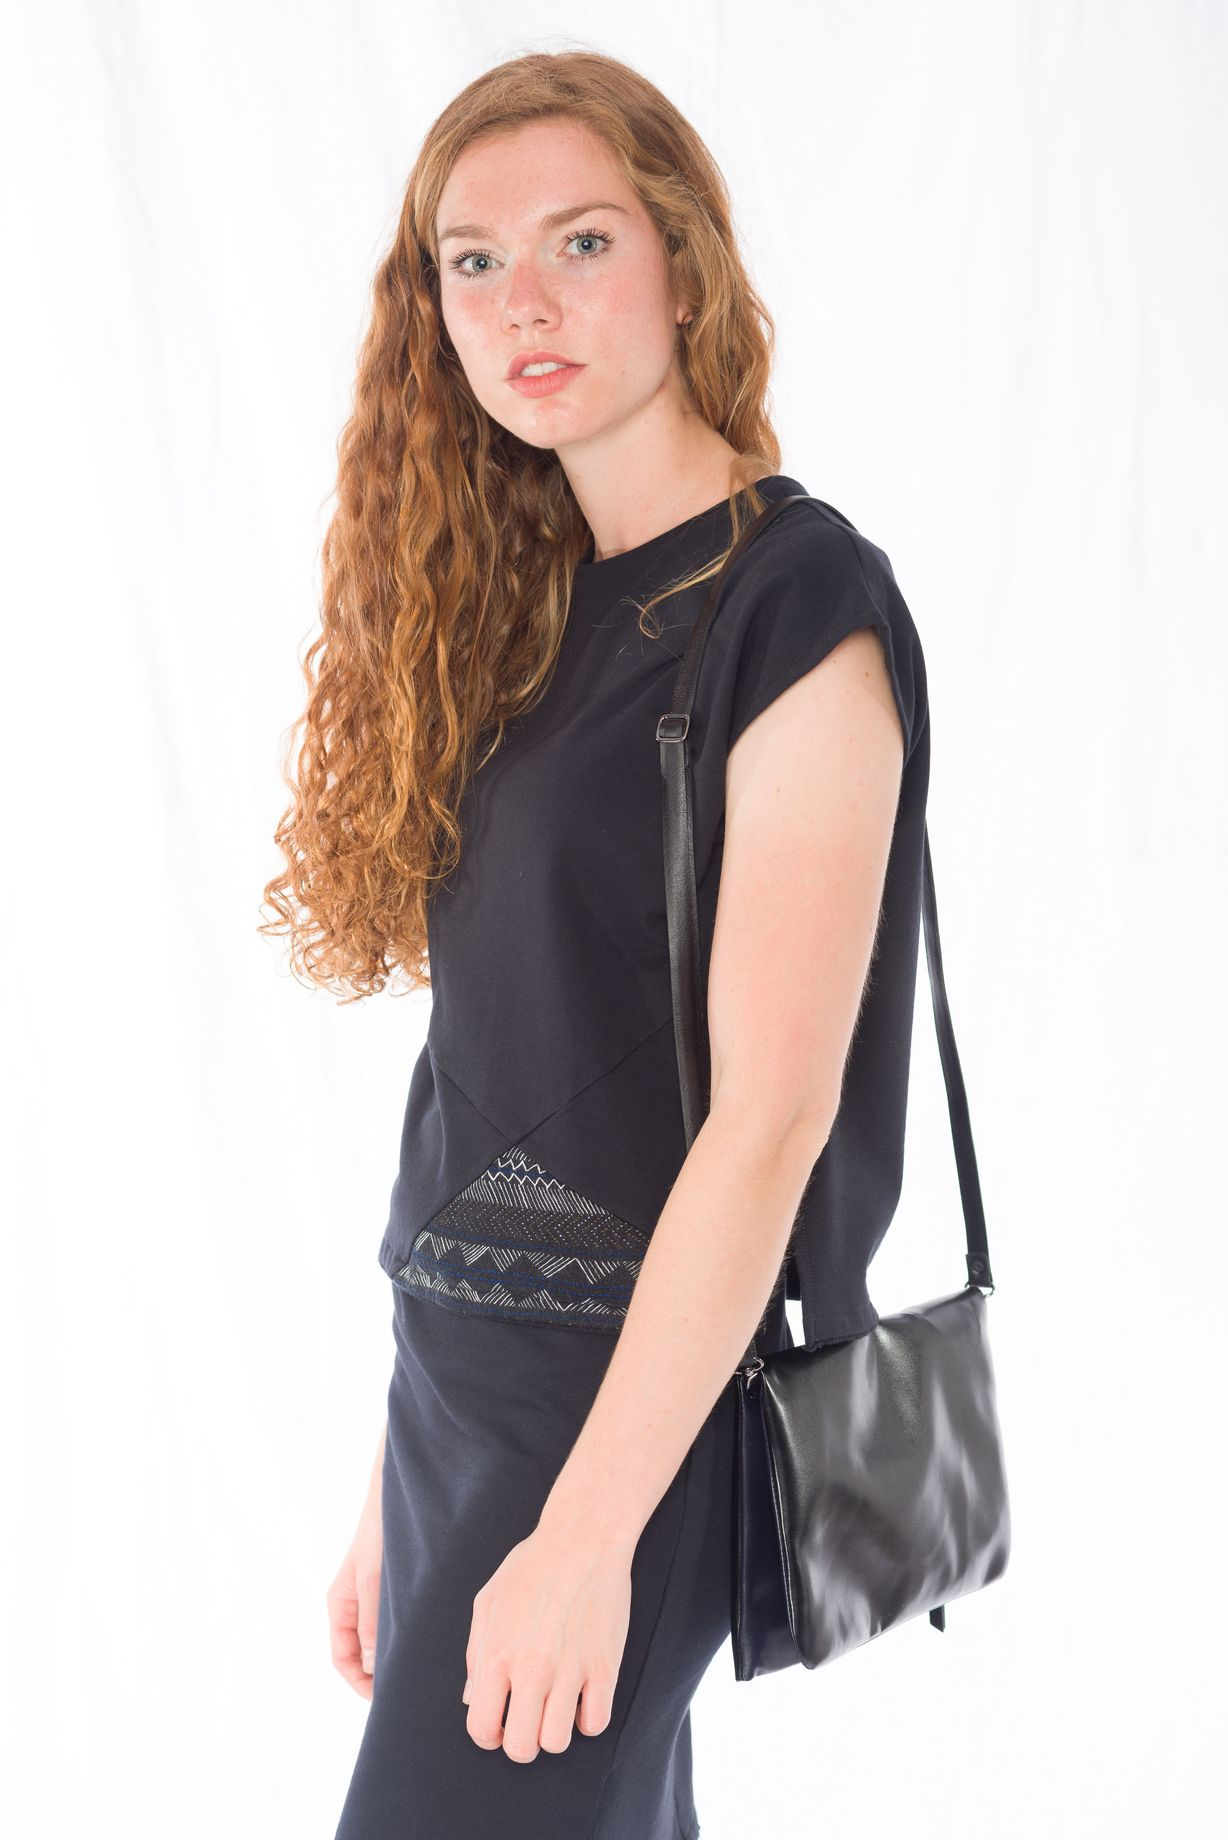 Sweat-Tshirt Shorty Multikulti _ Sweat-Rock Black _ Cross Body Bag